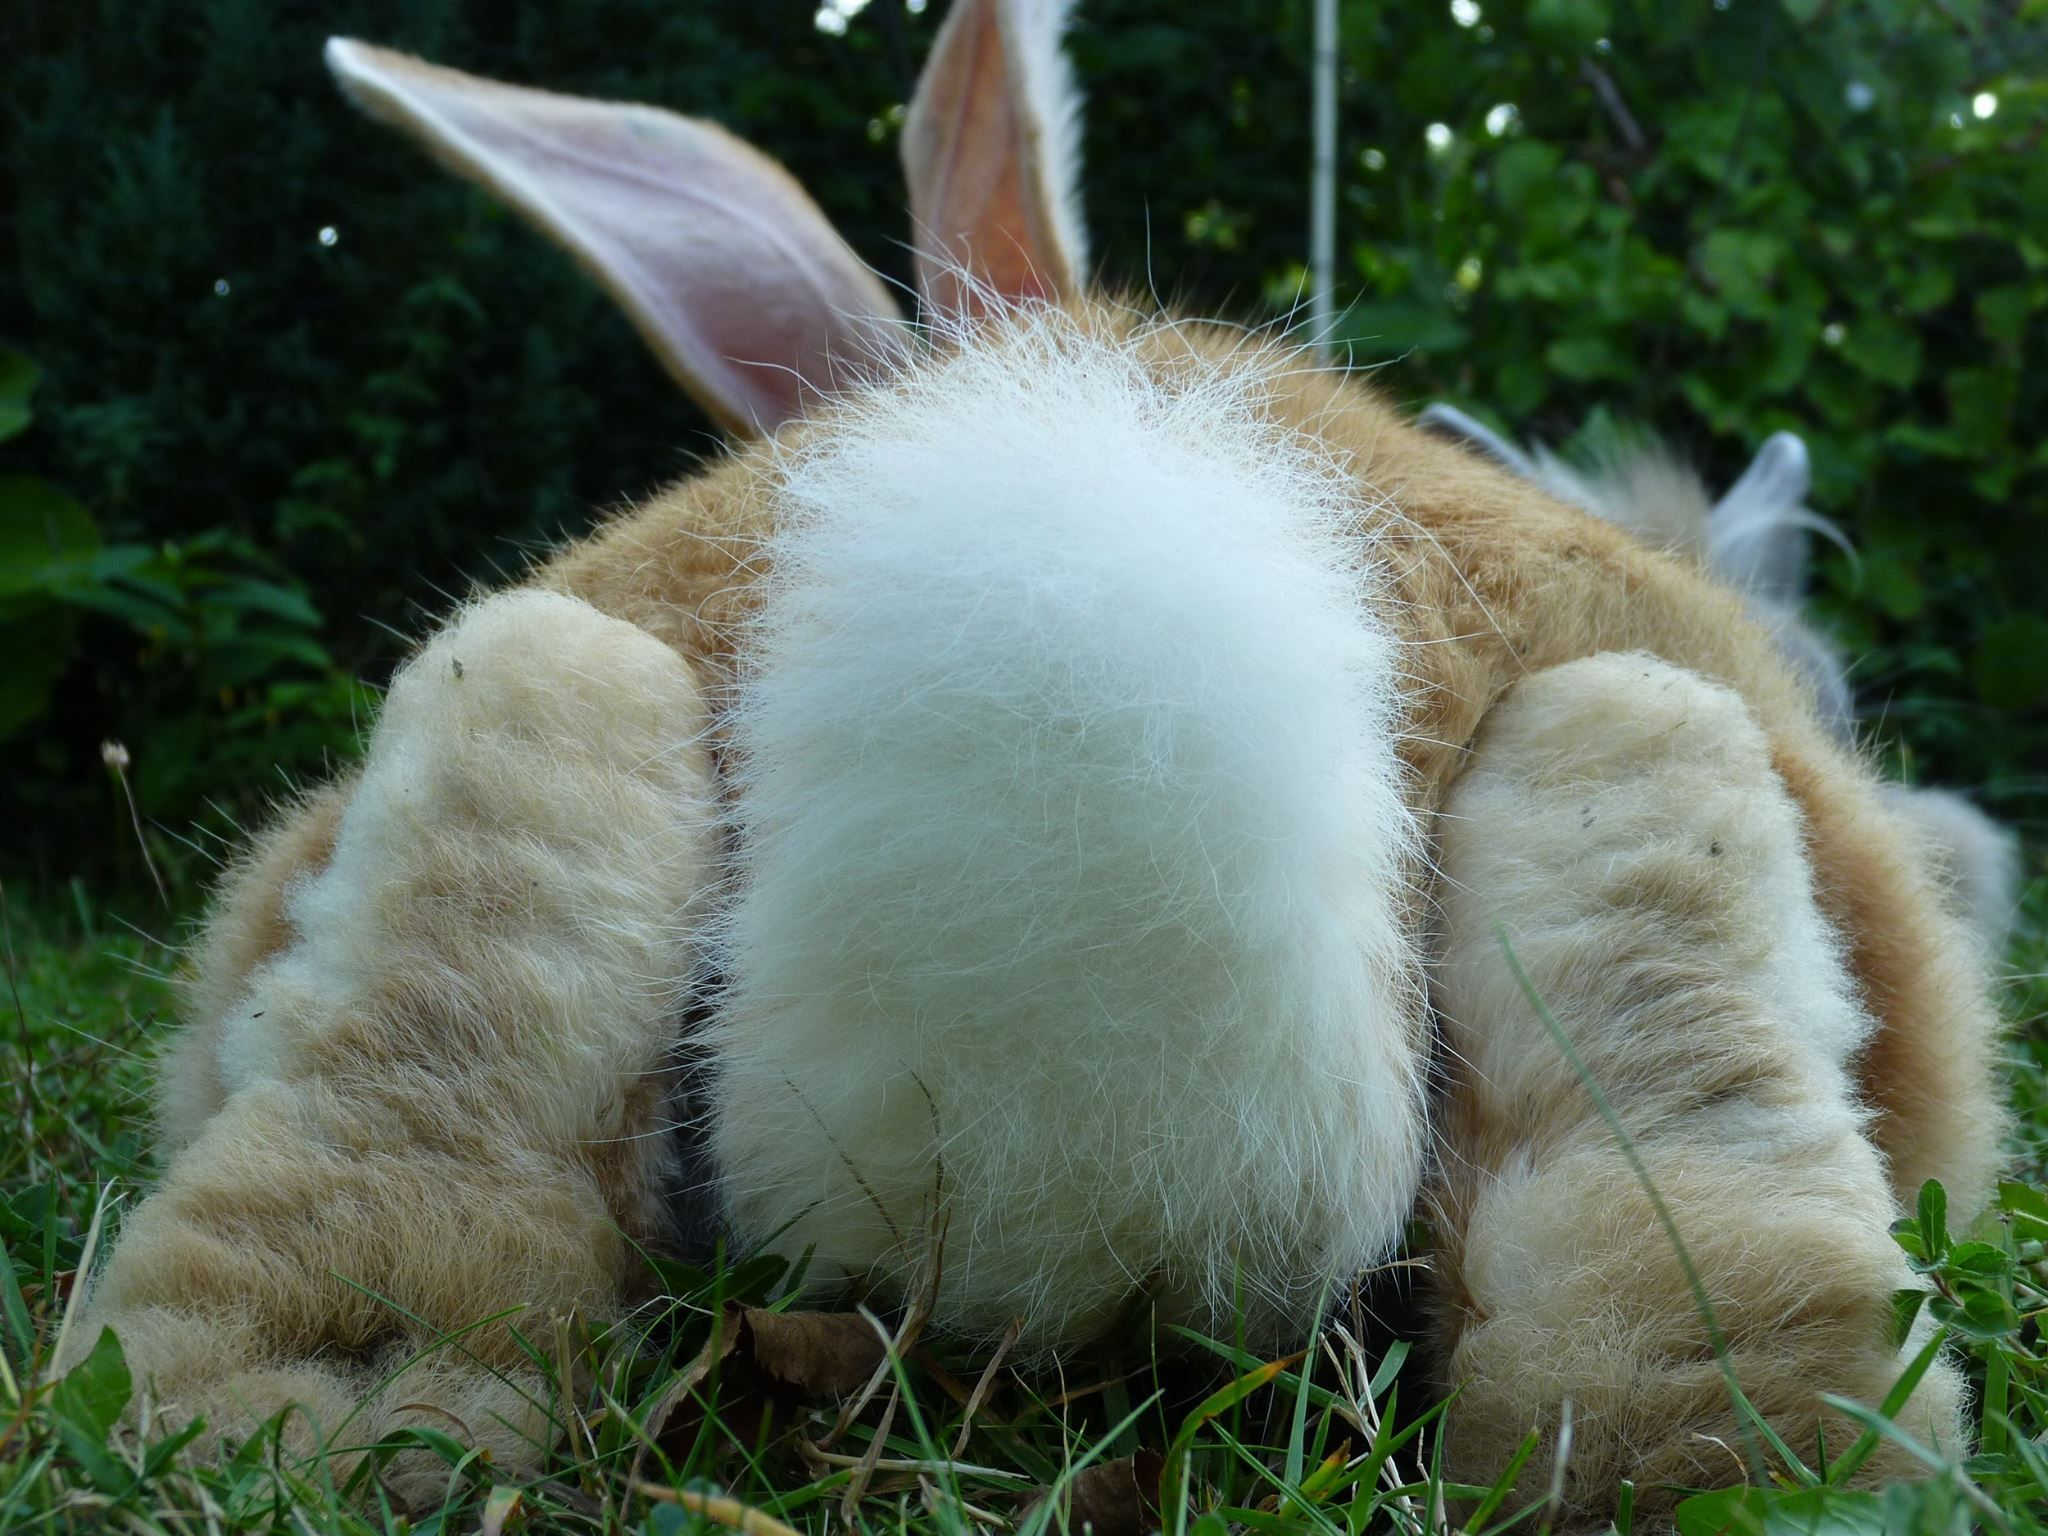 Poopy butt in rabbits